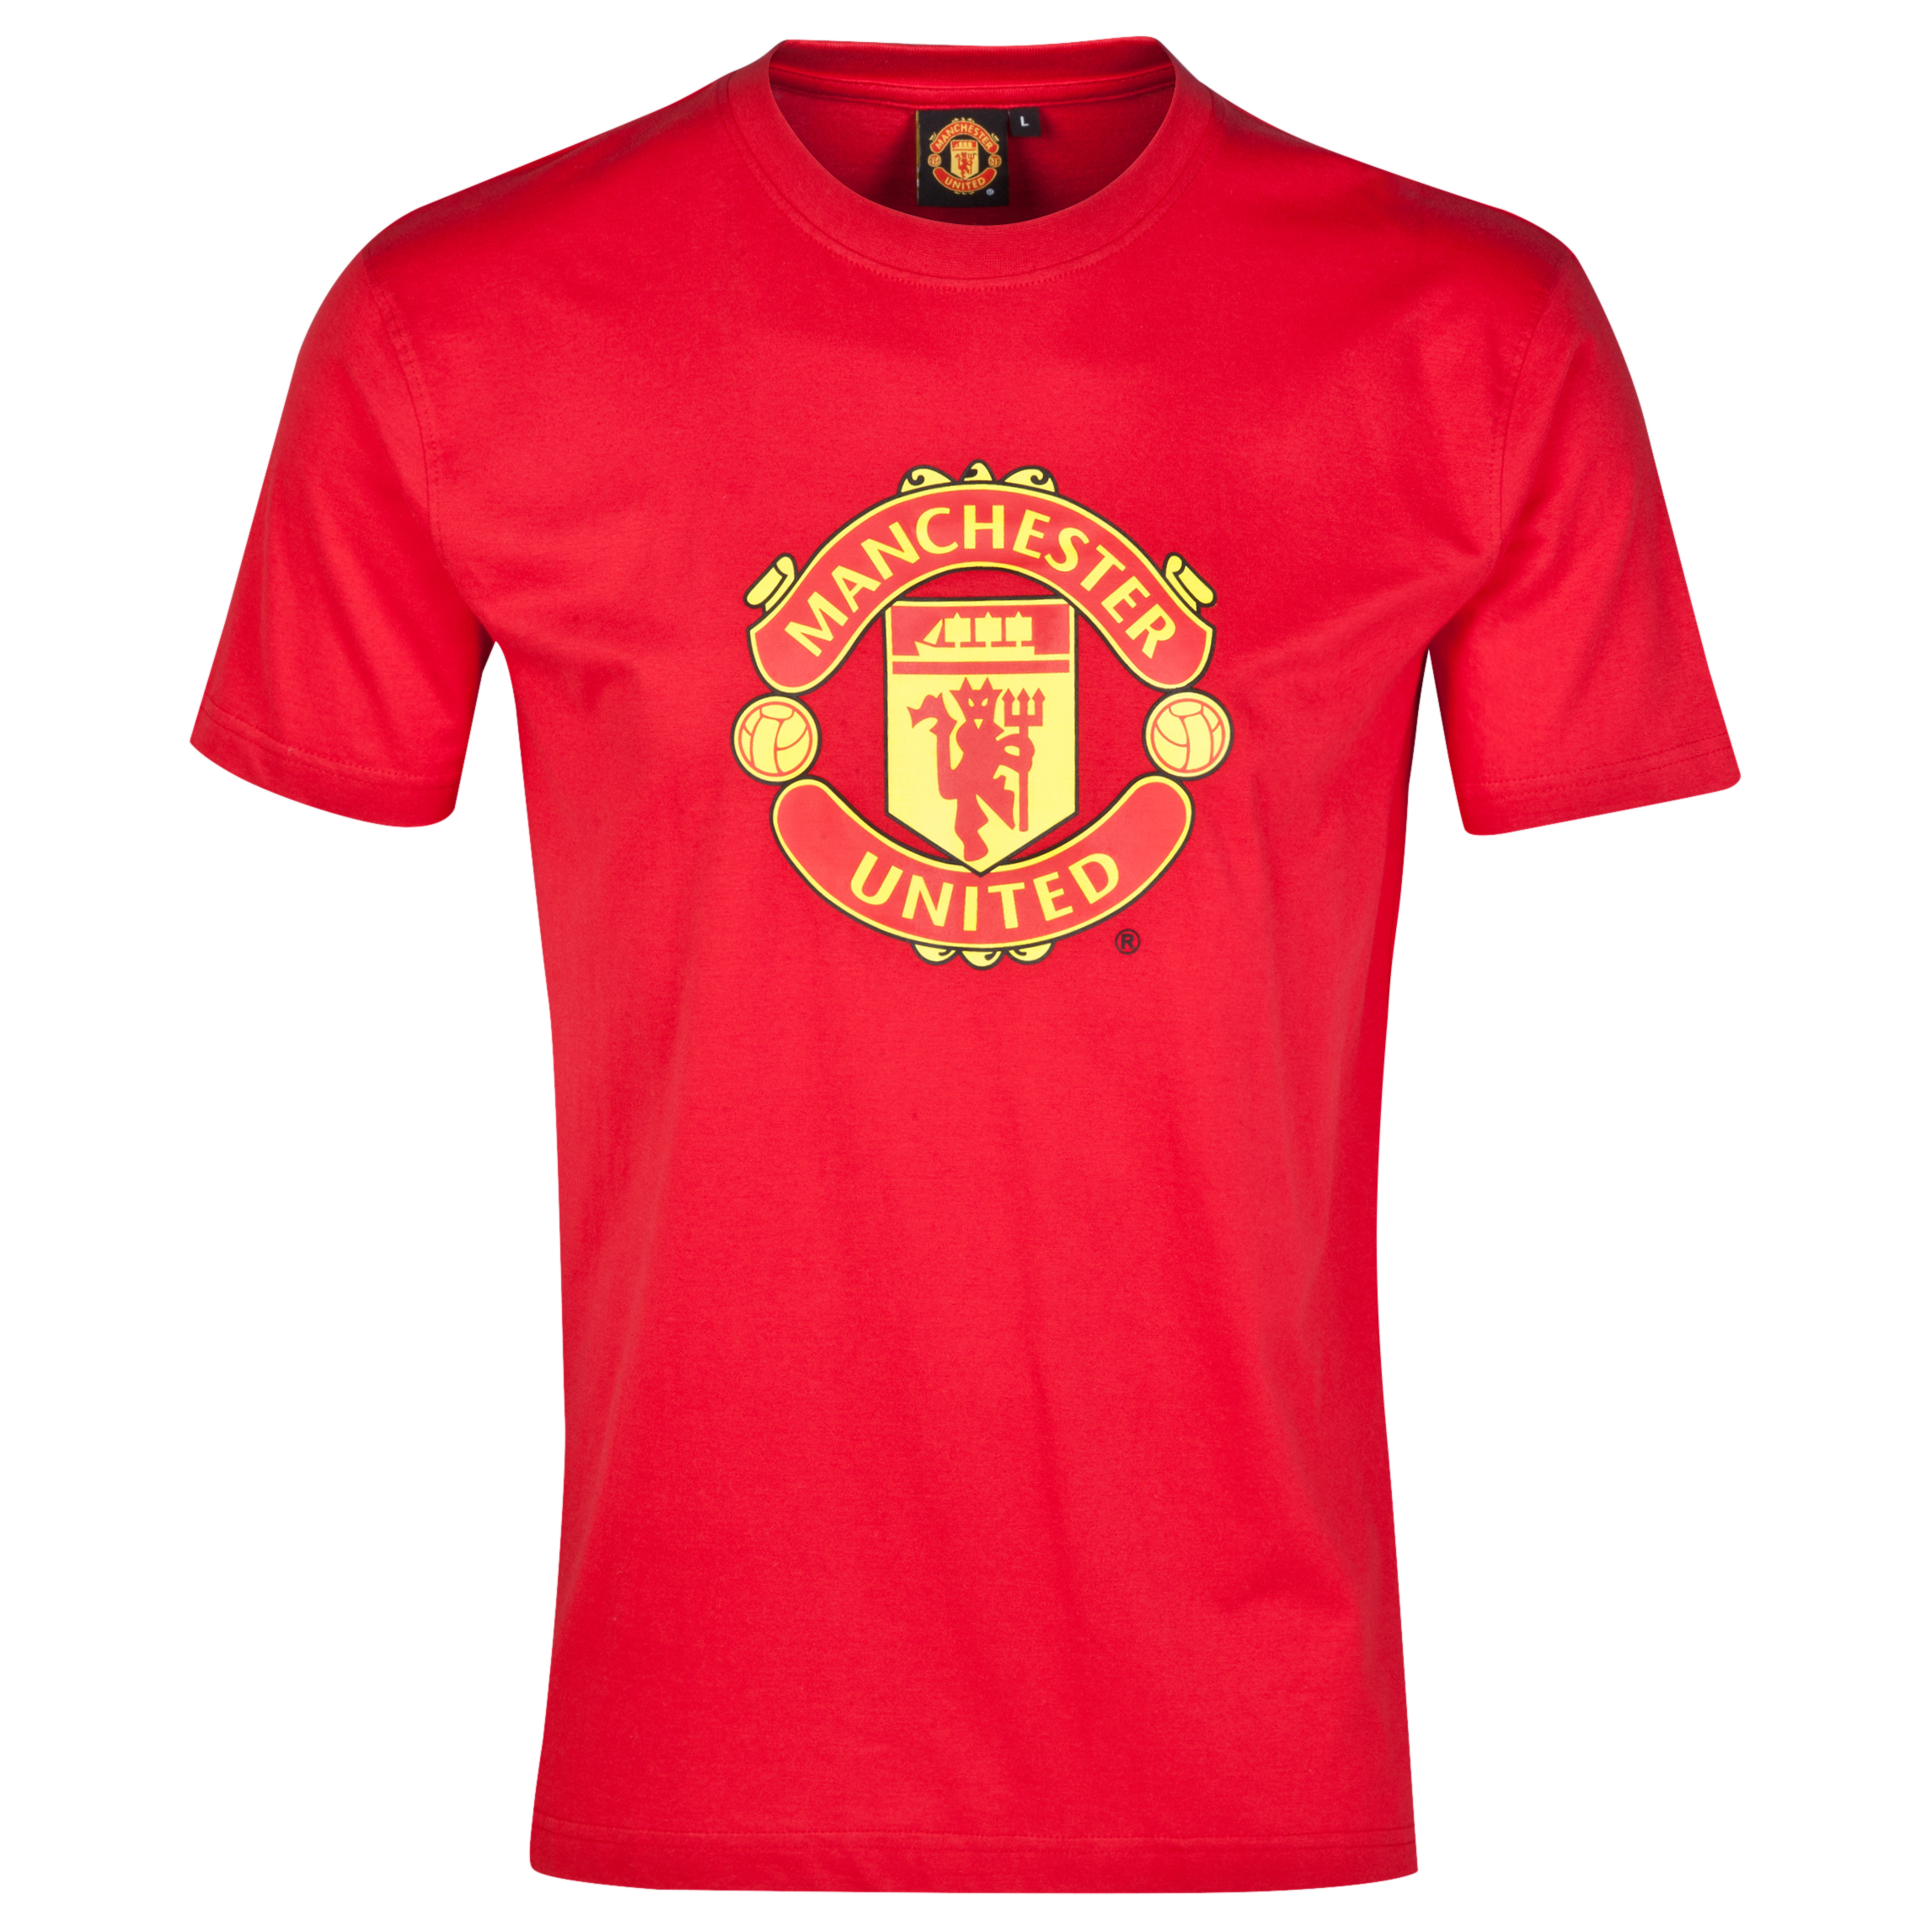 Manchester United Crest T-Shirt - Red - Mens